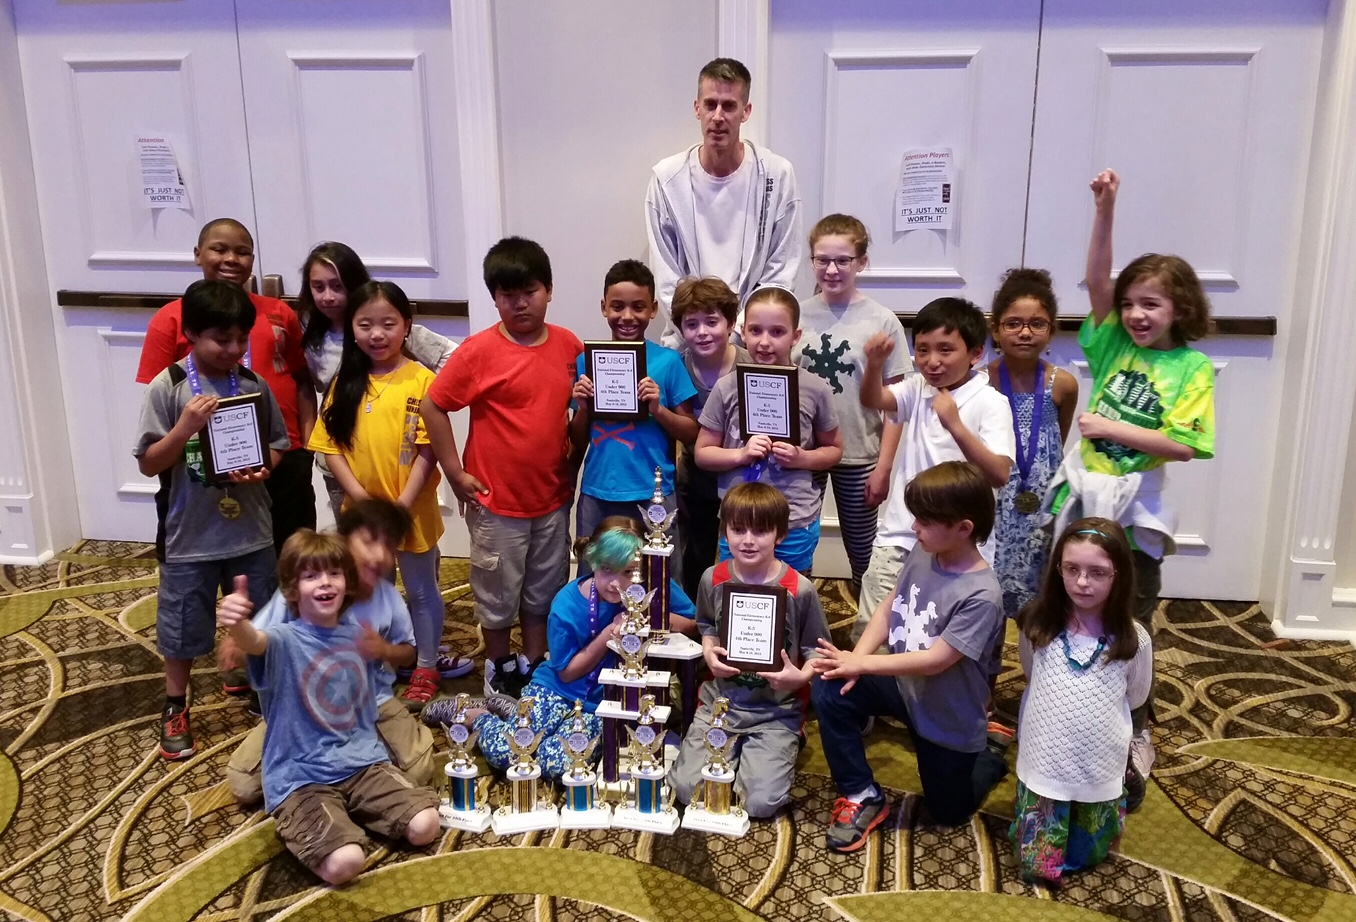 PS 139 Chess Champs